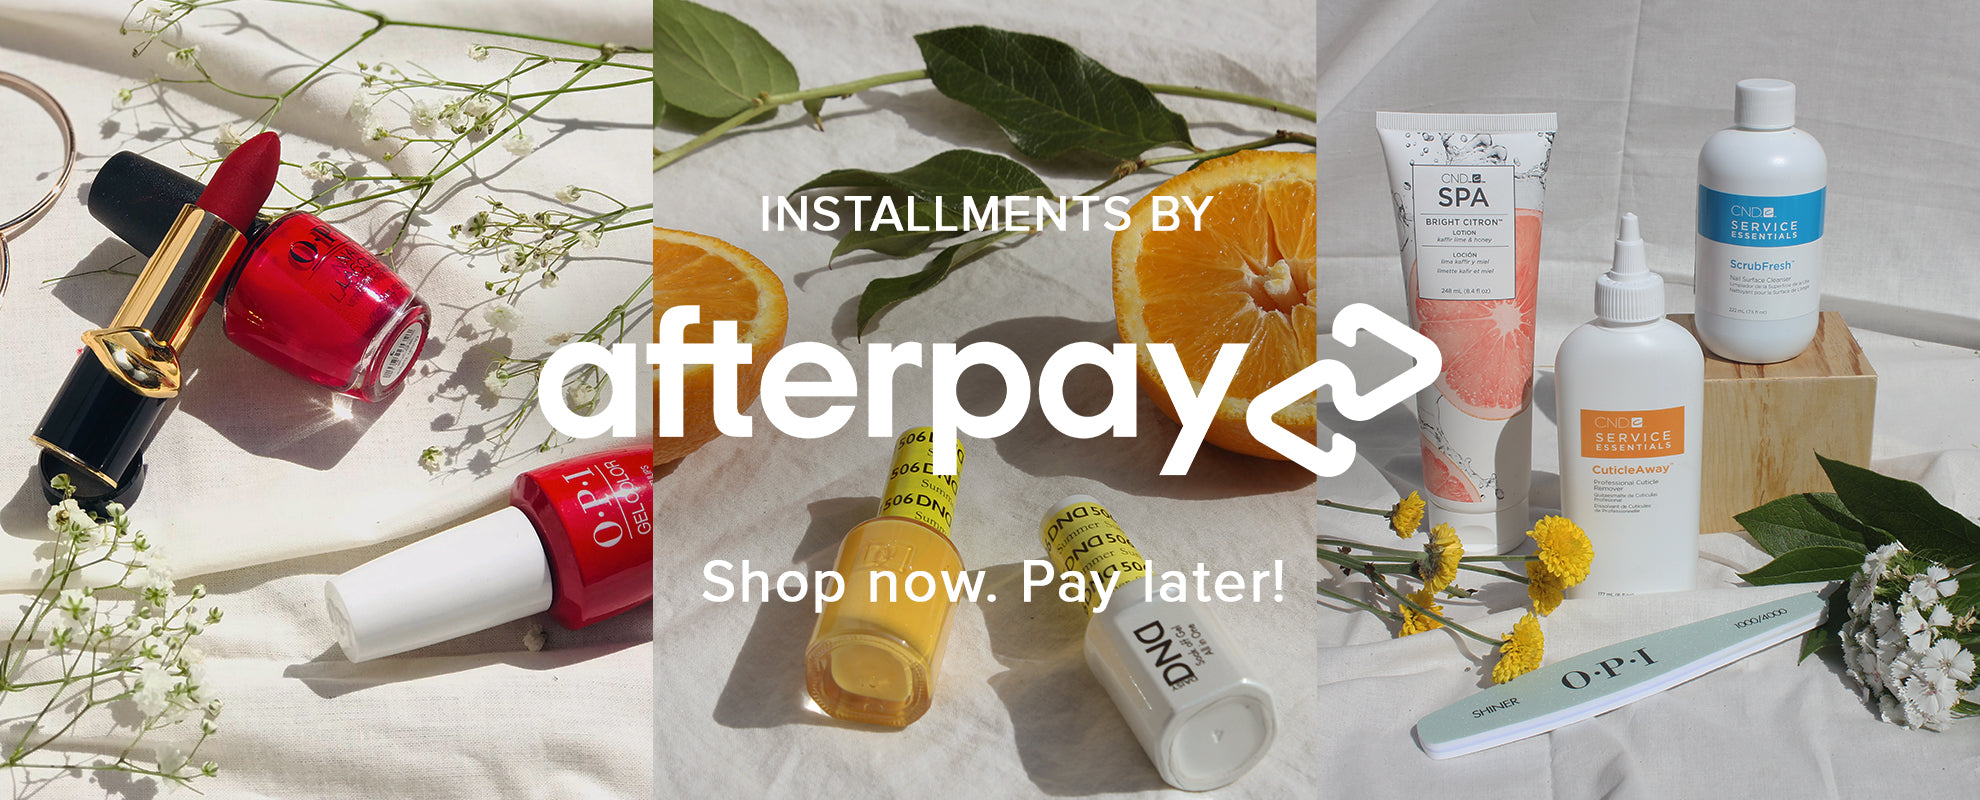 Shop Now, Pay Later with Afterpay